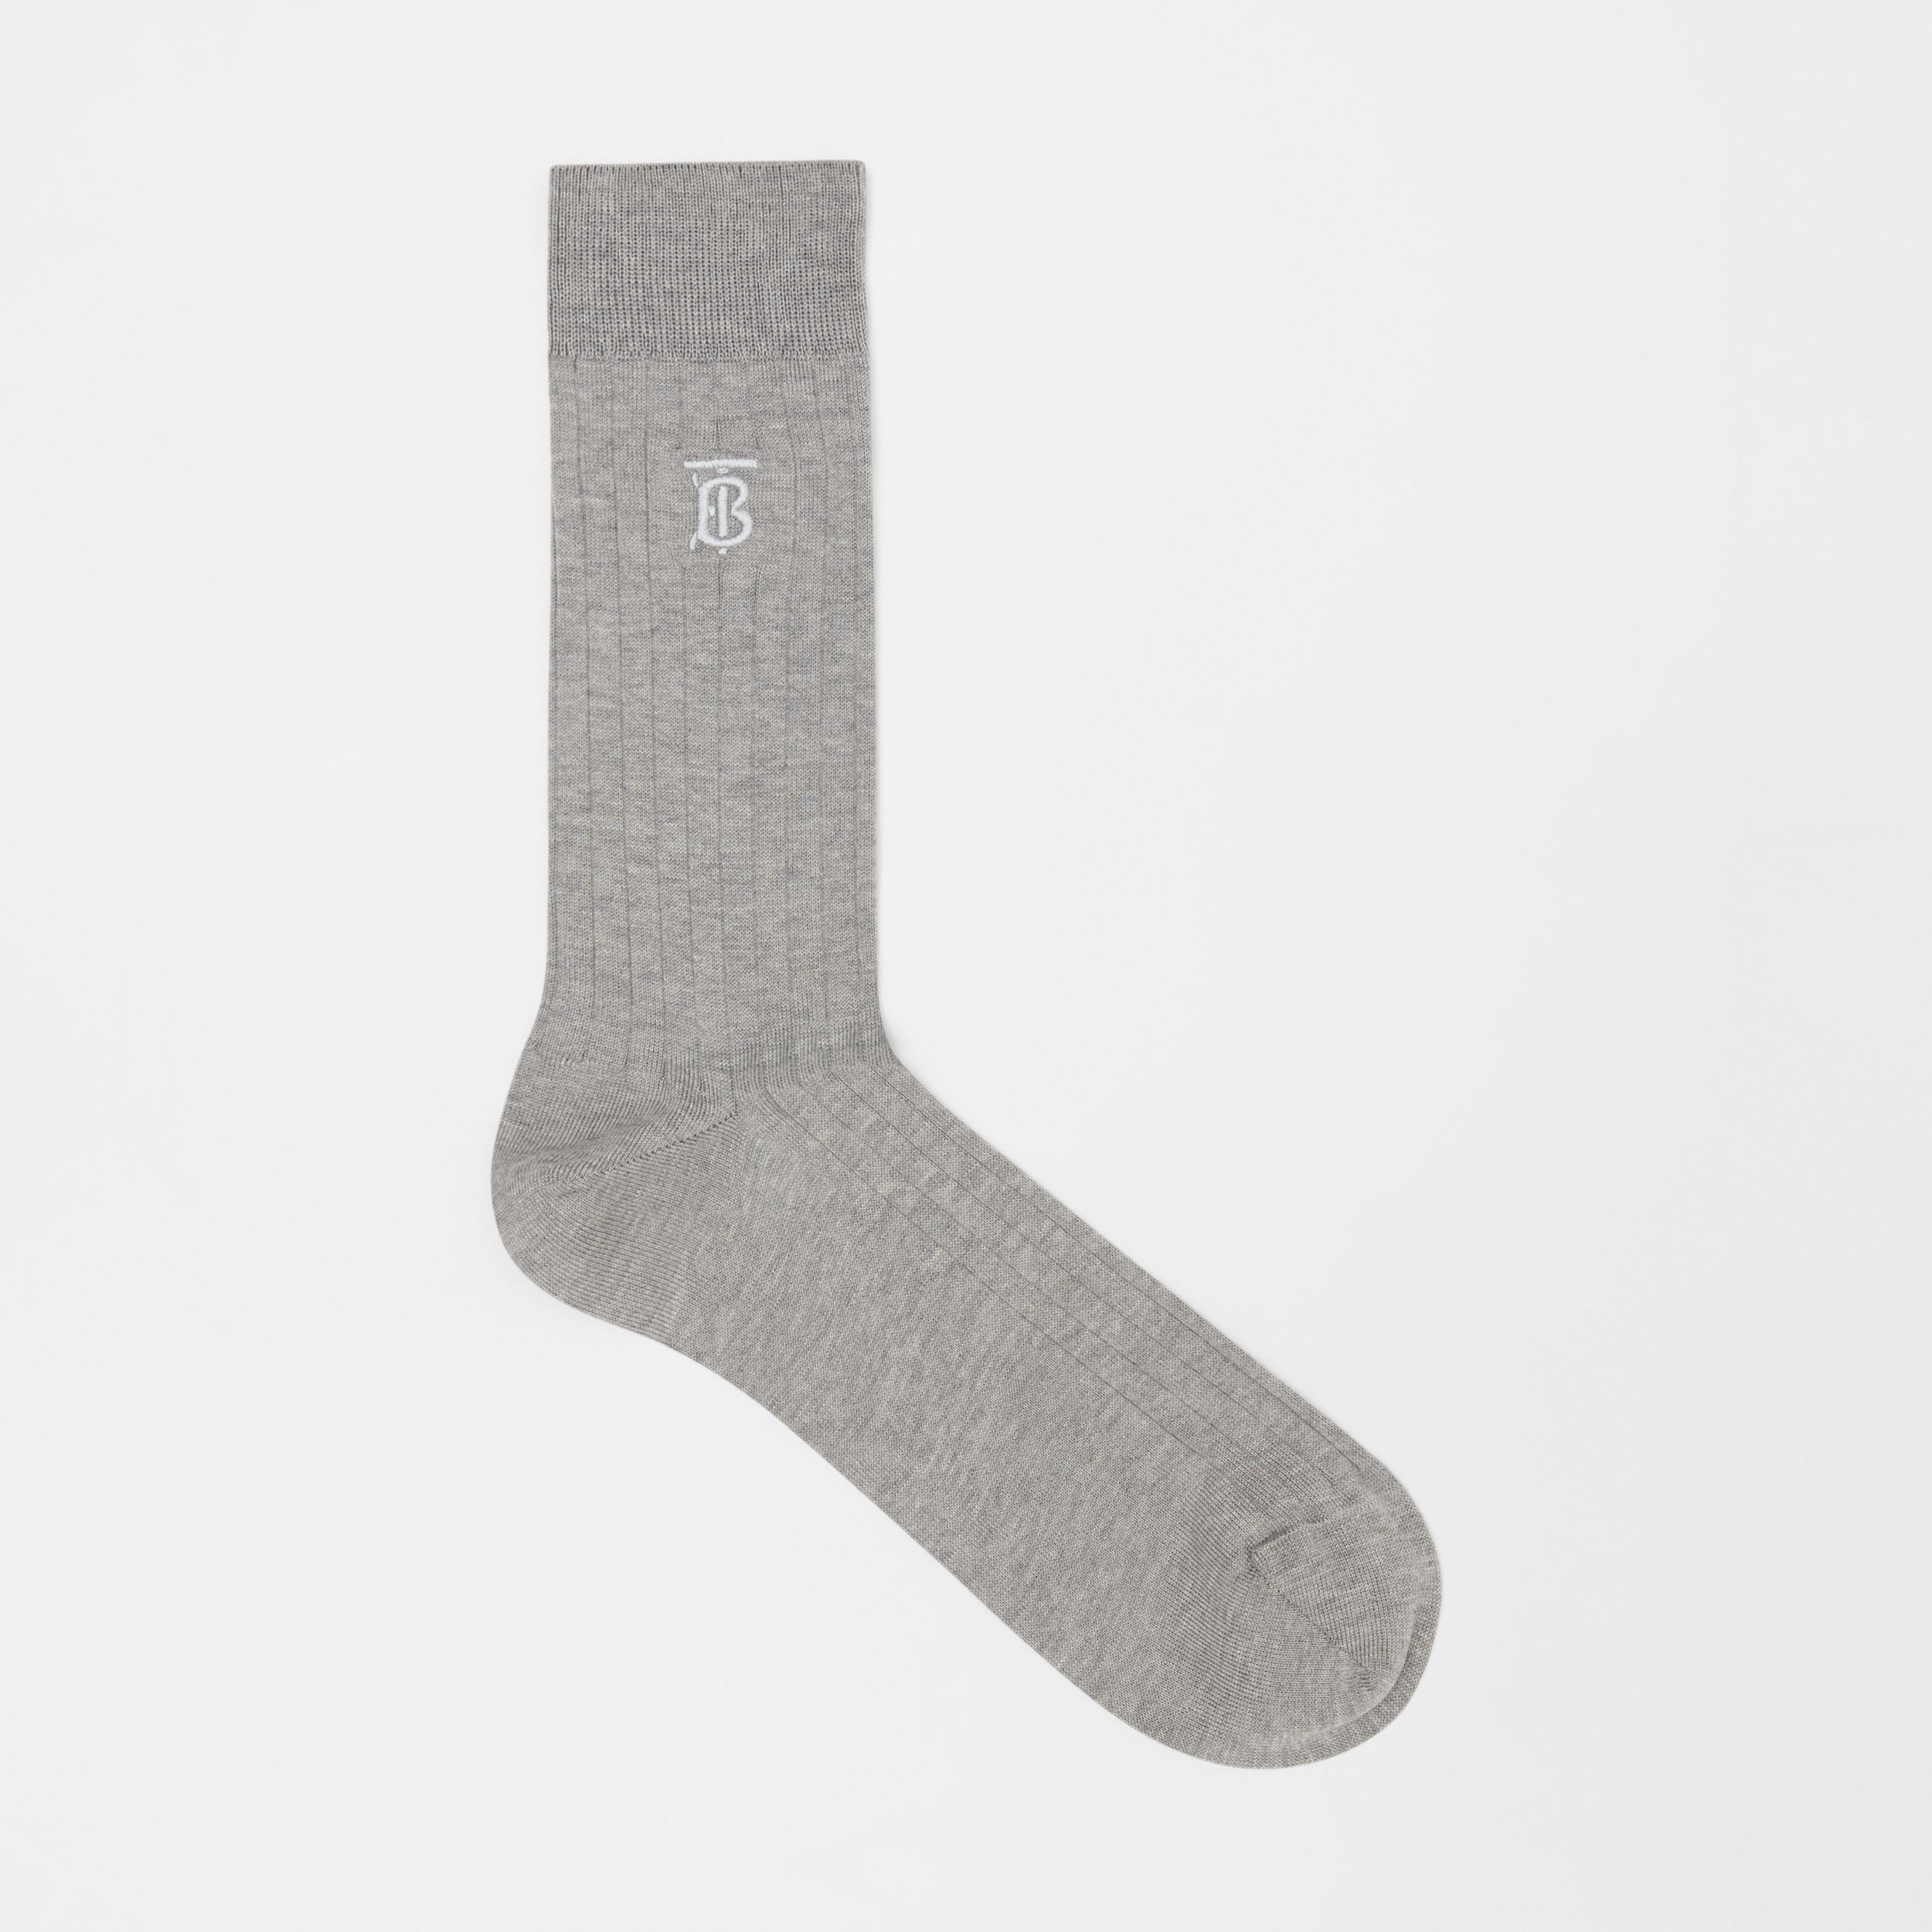 Monogram Motif Cotton Blend Socks in Grey | Burberry - 1